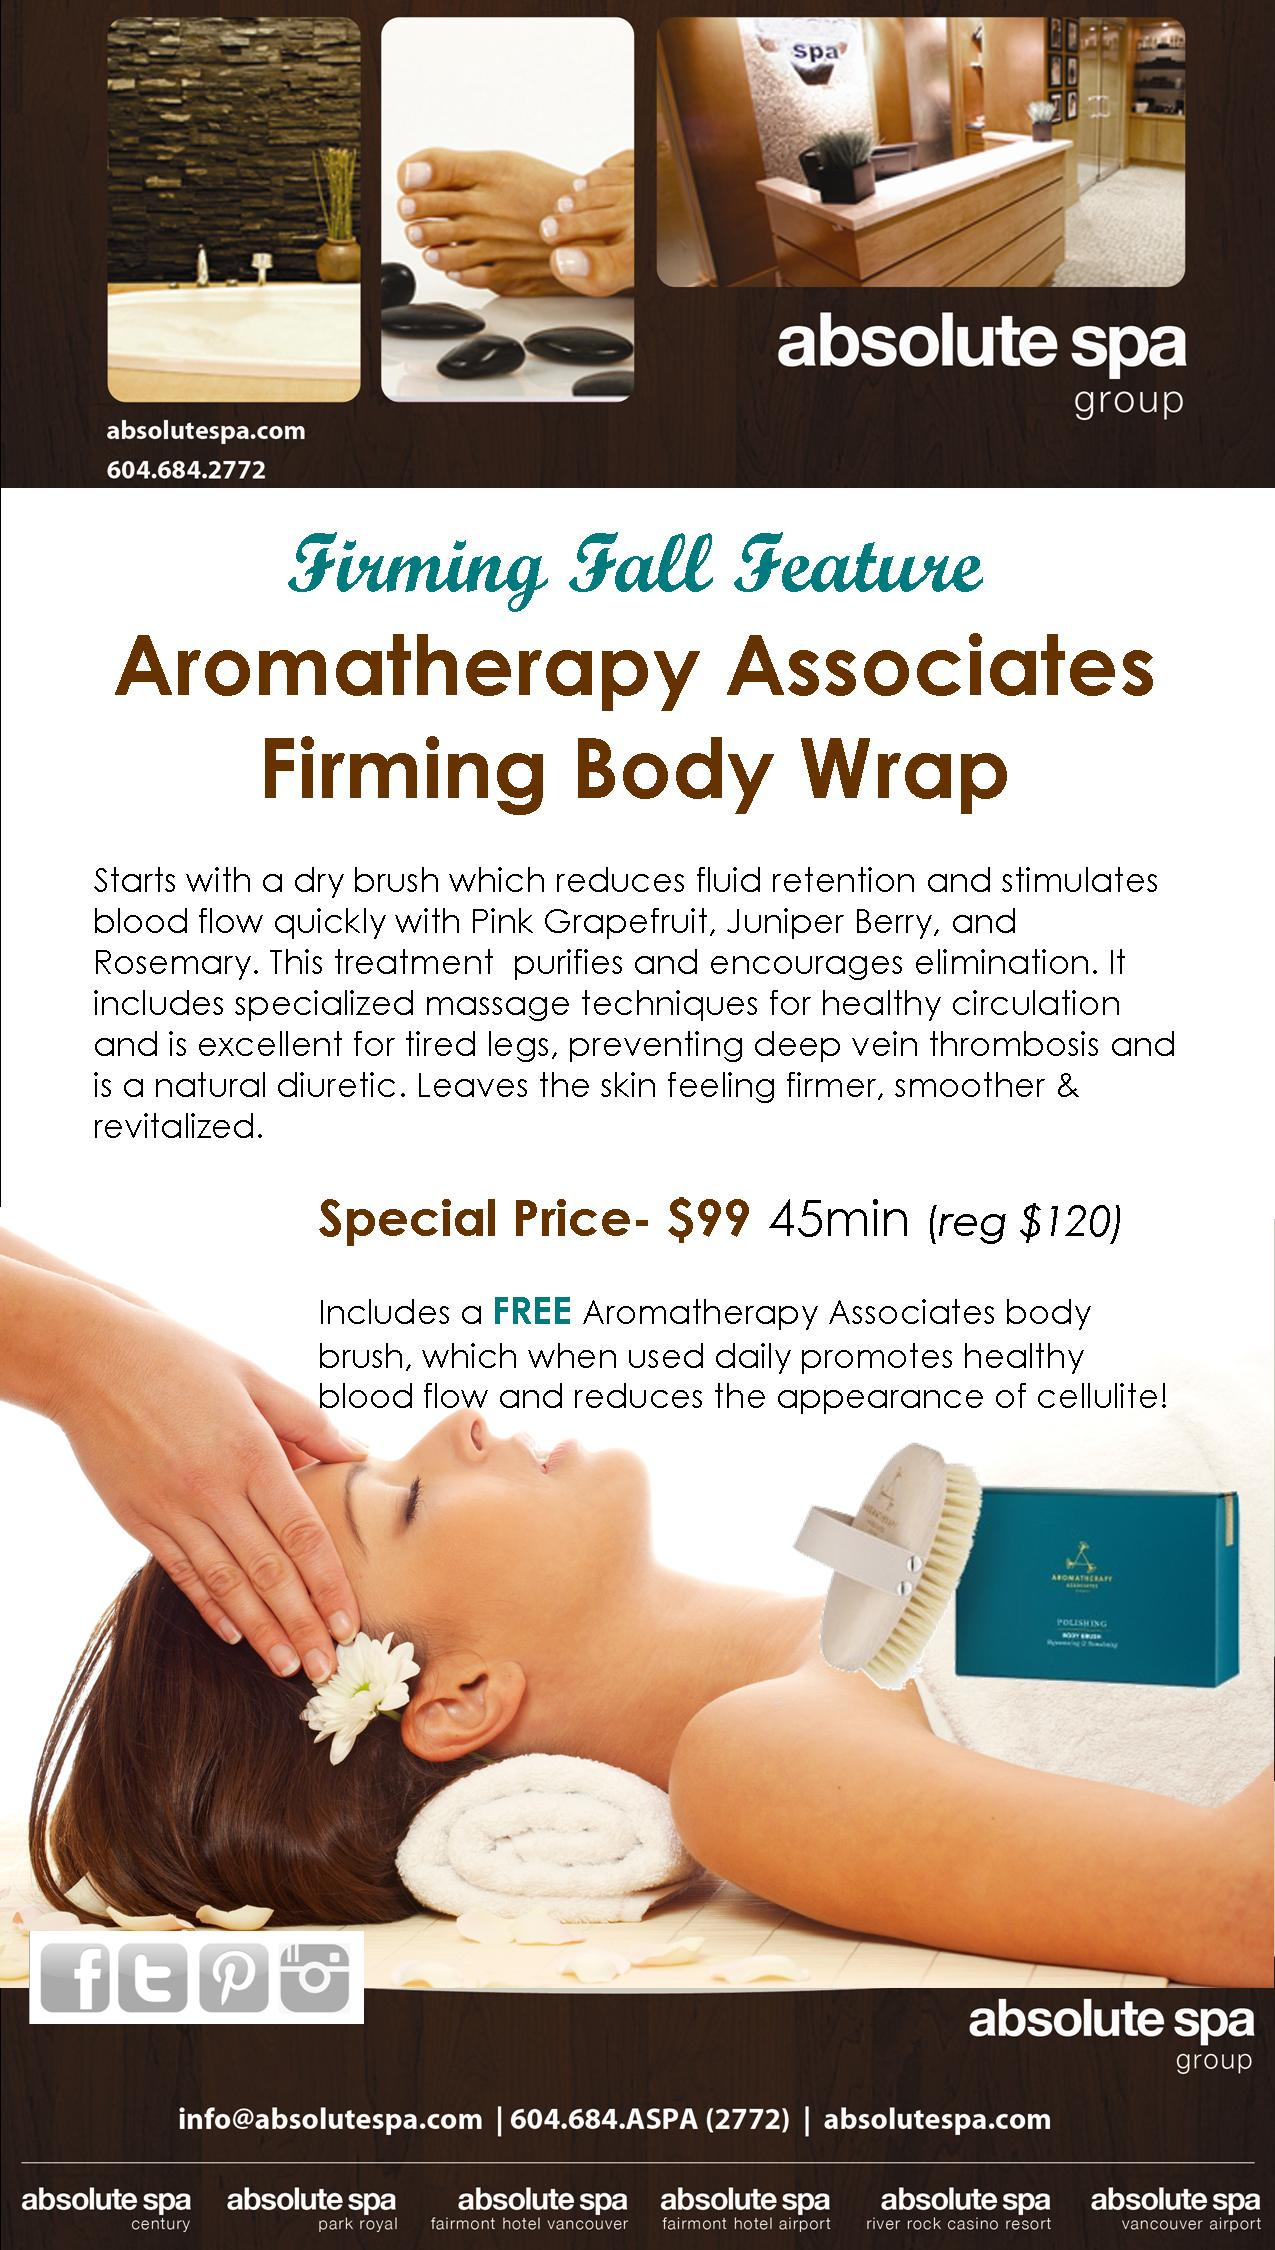 New! Firming Fall Feature Body Wrap